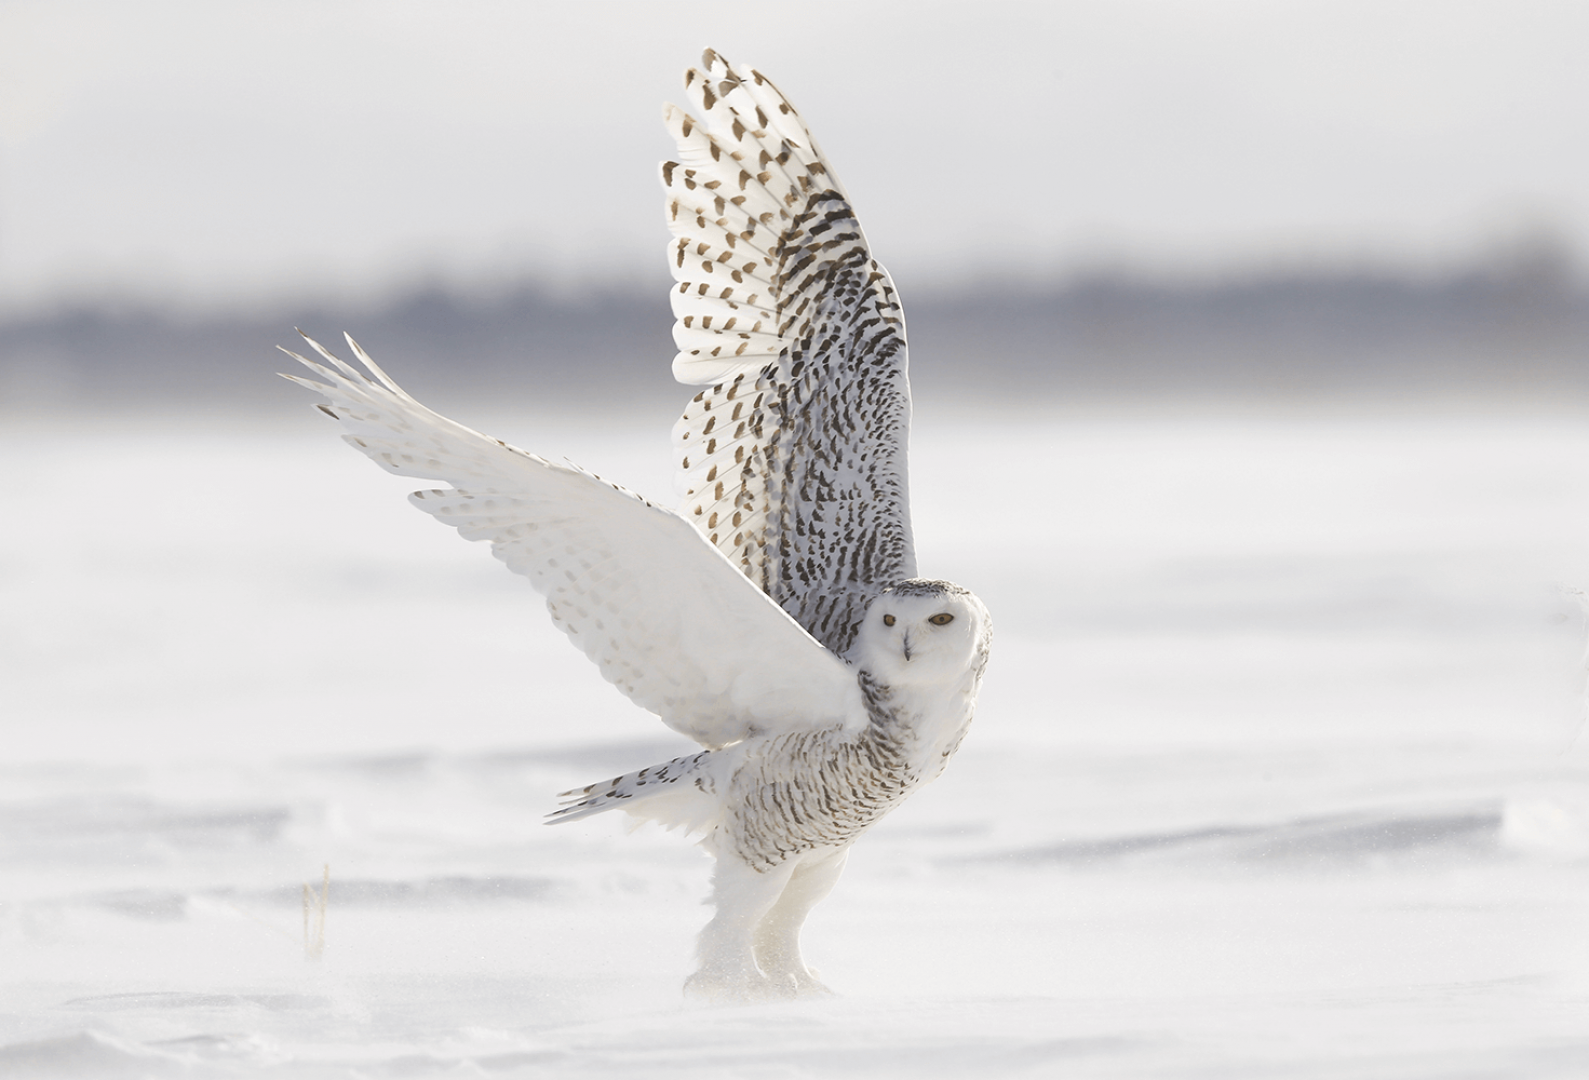 Canada-Ontario-Chouette-Harfang-des-neiges-Photo-Michel-Rawicki2.png